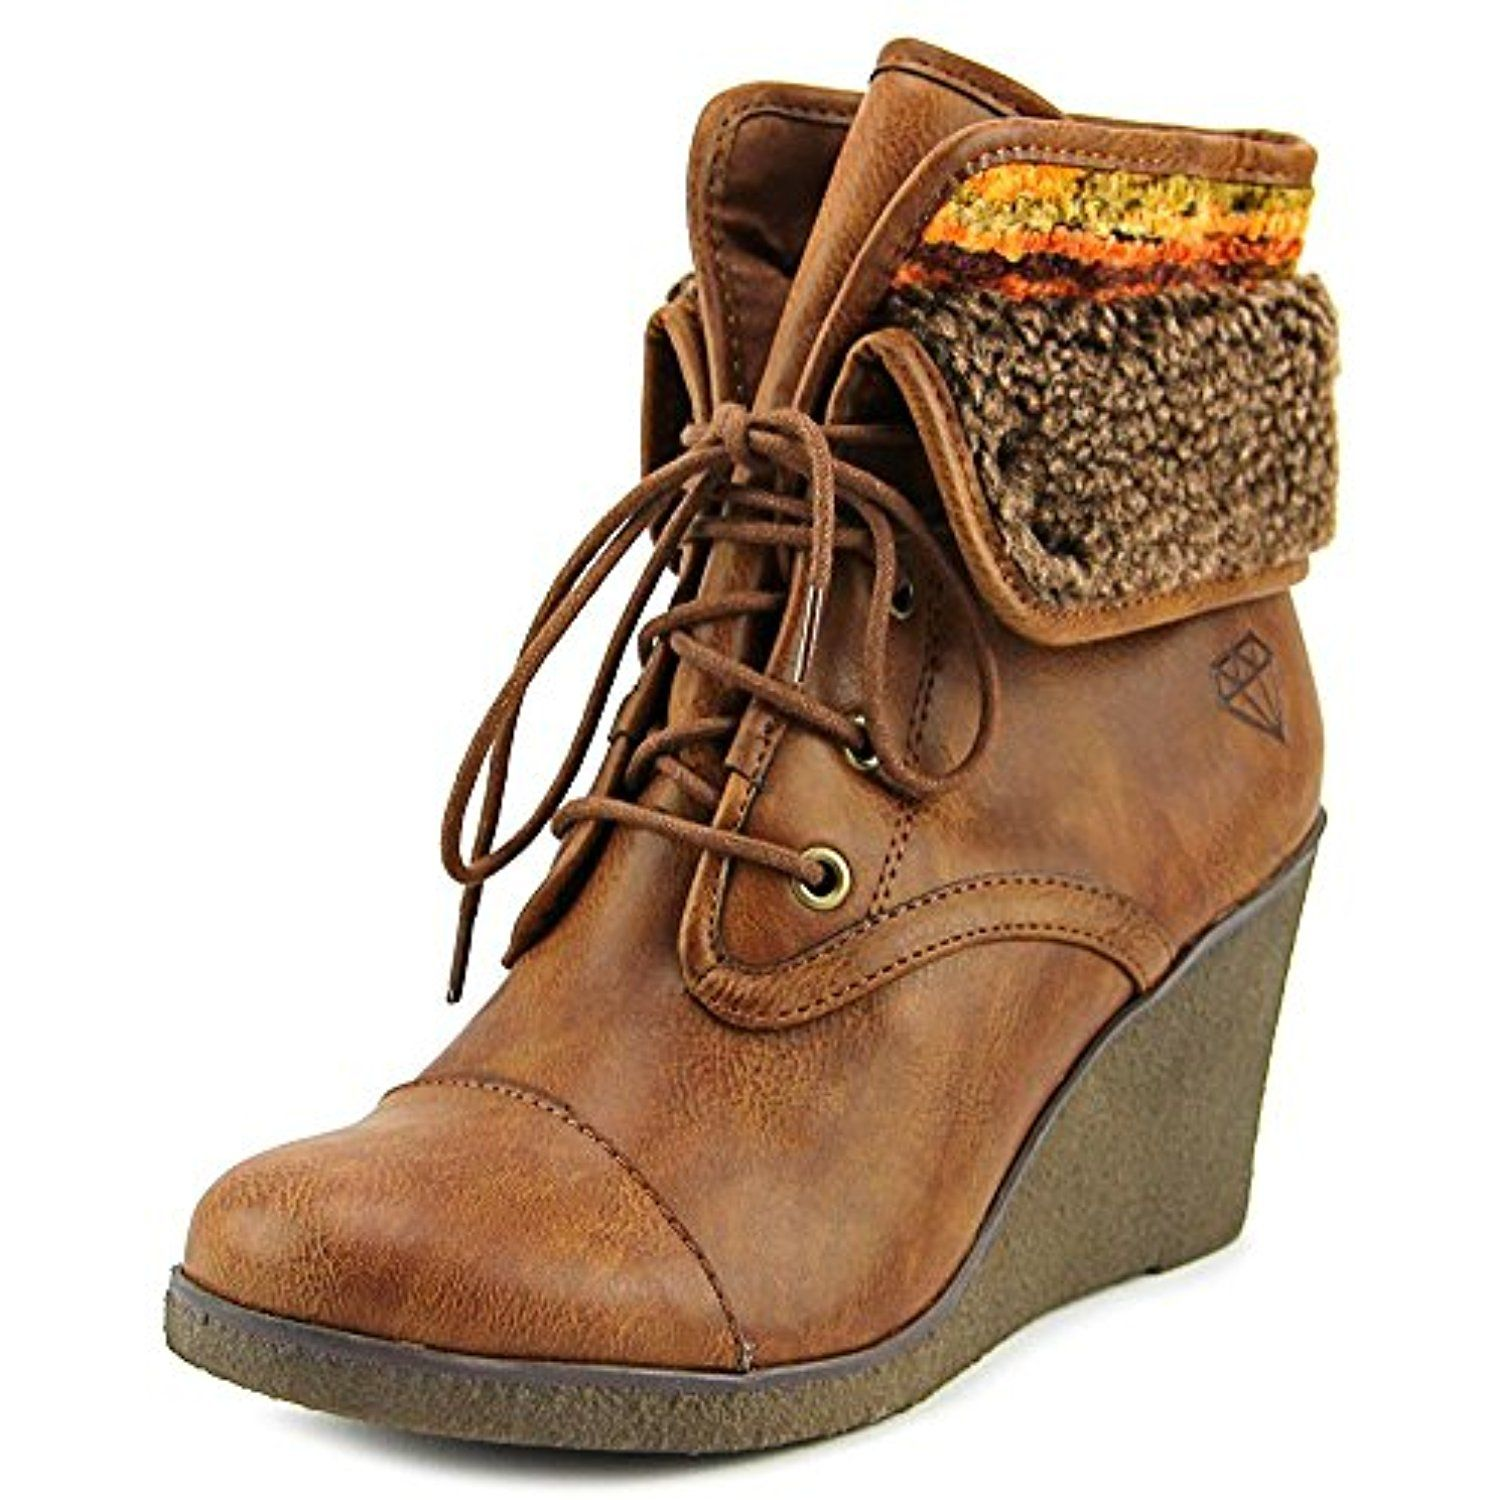 Womens Sabra Round Toe Ankle Fashion Boots